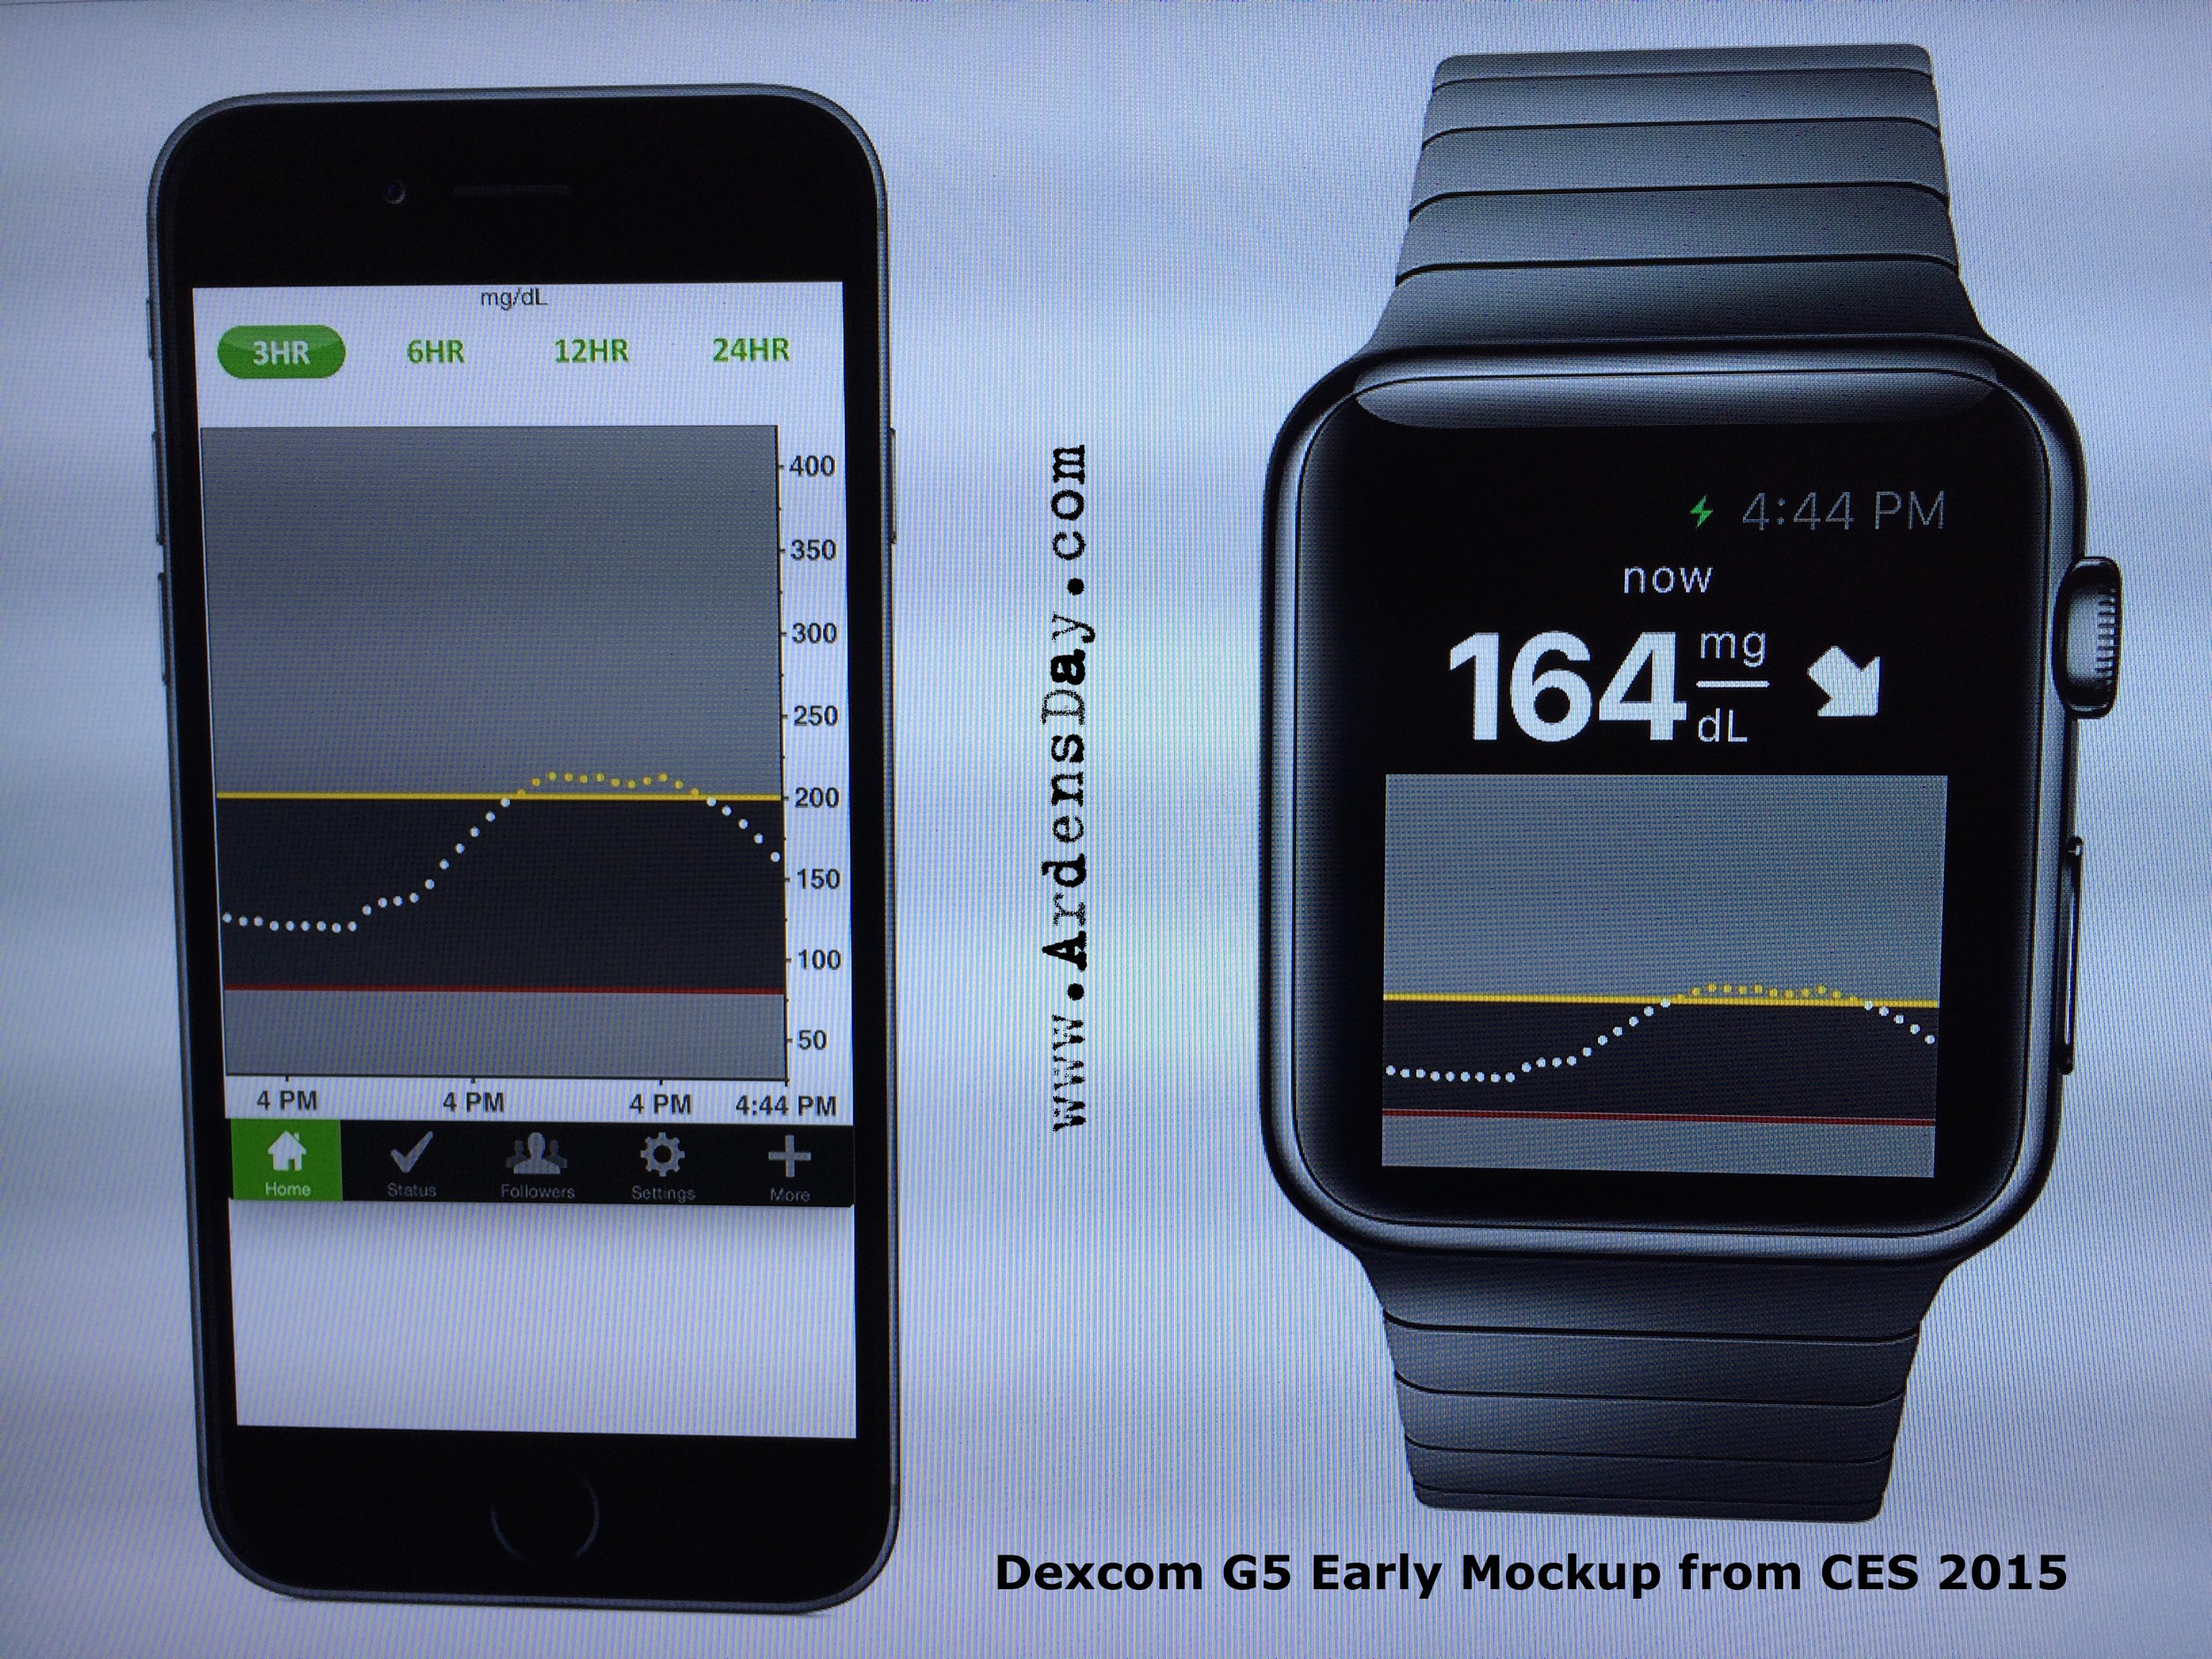 Dexcom G5 Early Mockup from CES 2015